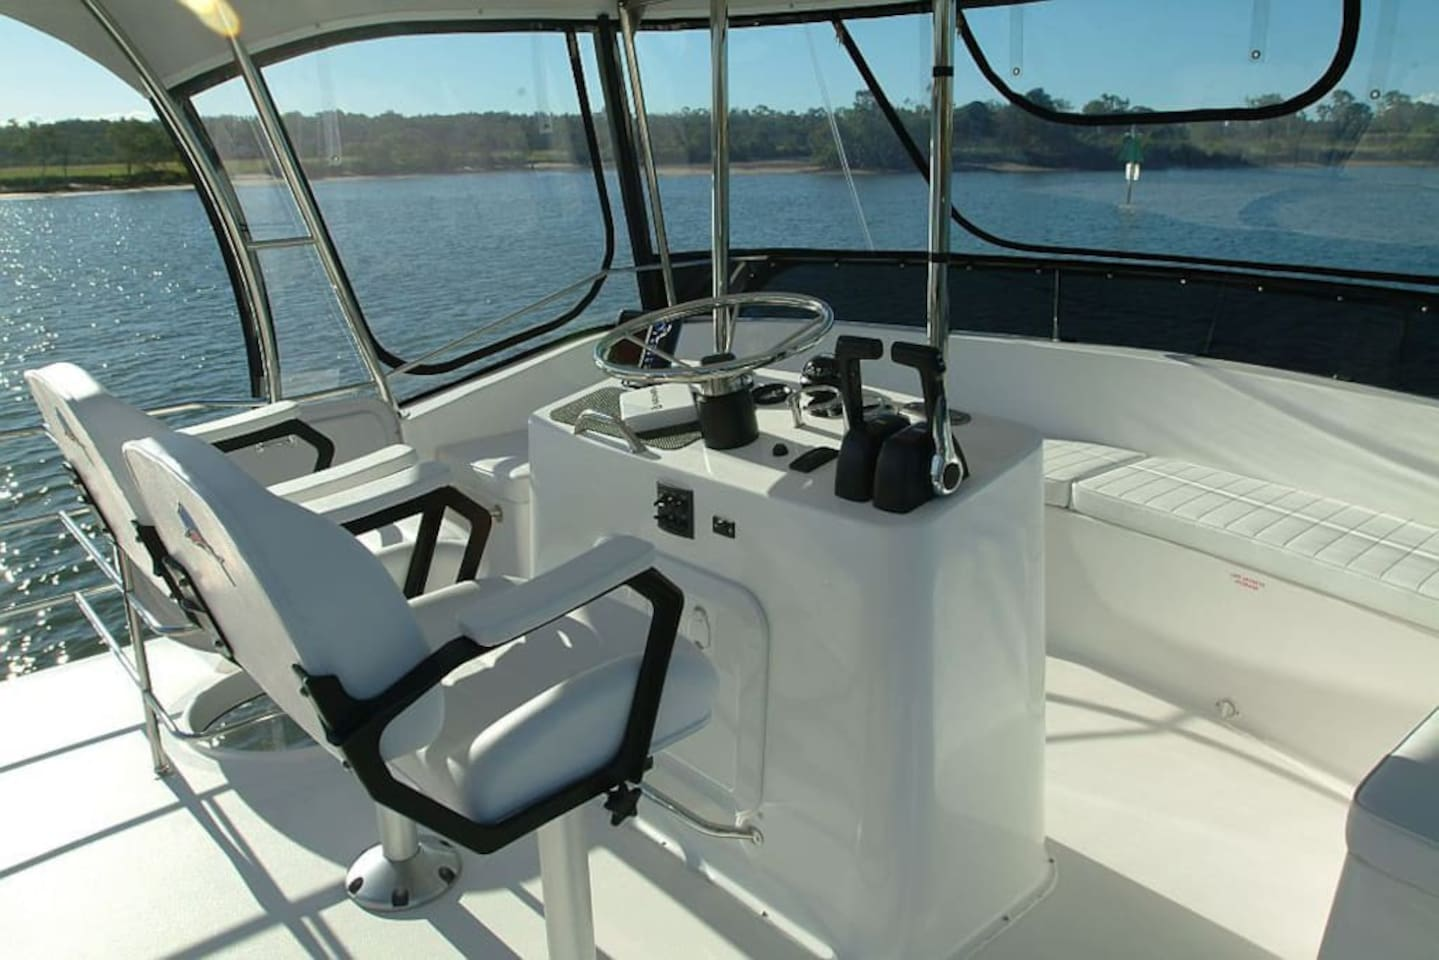 Top deck helm area, the perfect place to sit and enjoy the water view, glass of wine in hand.